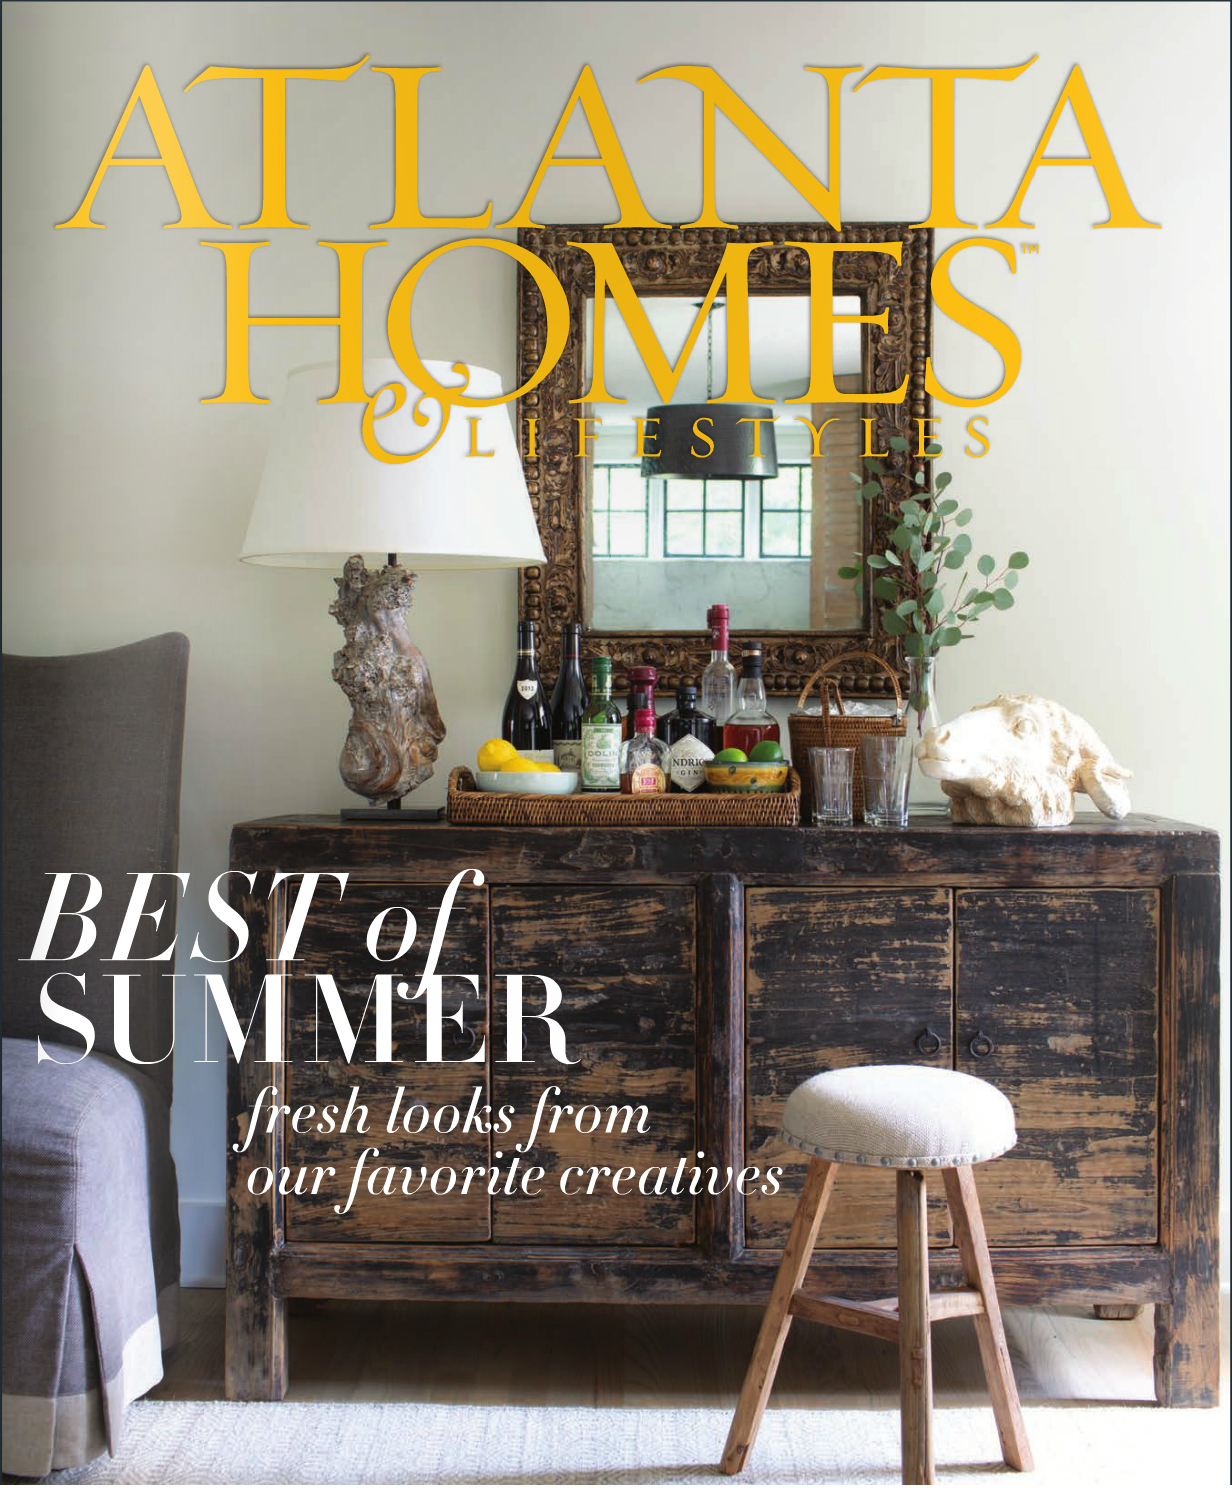 Atlanta Homes & Lifestyles , Summer 2015